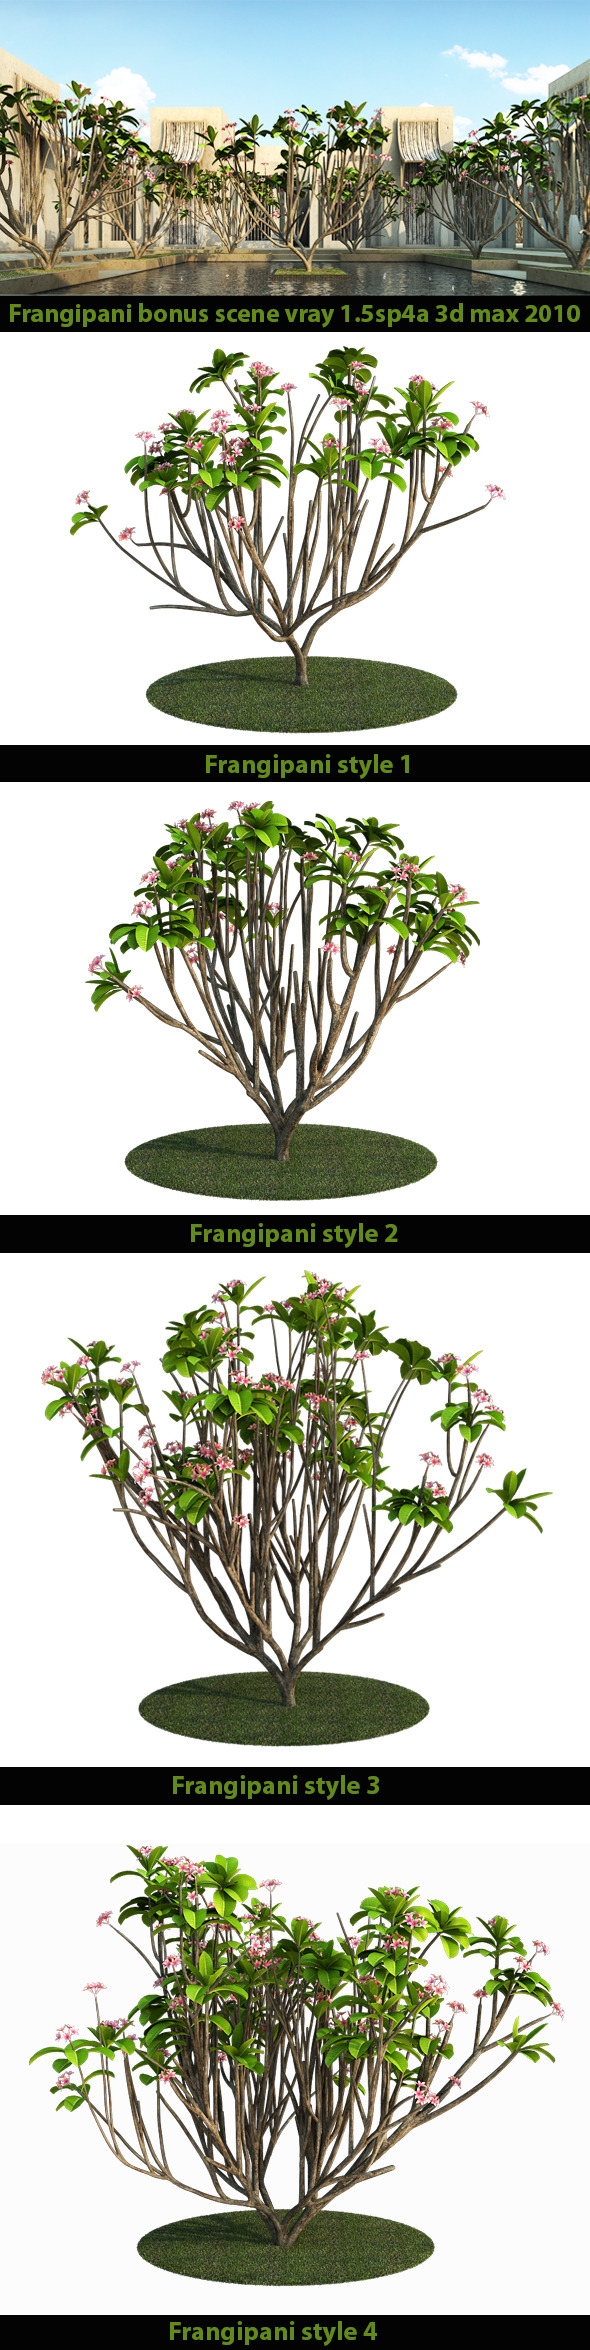 Frangipani Tree v.2 - 3DOcean Item for Sale